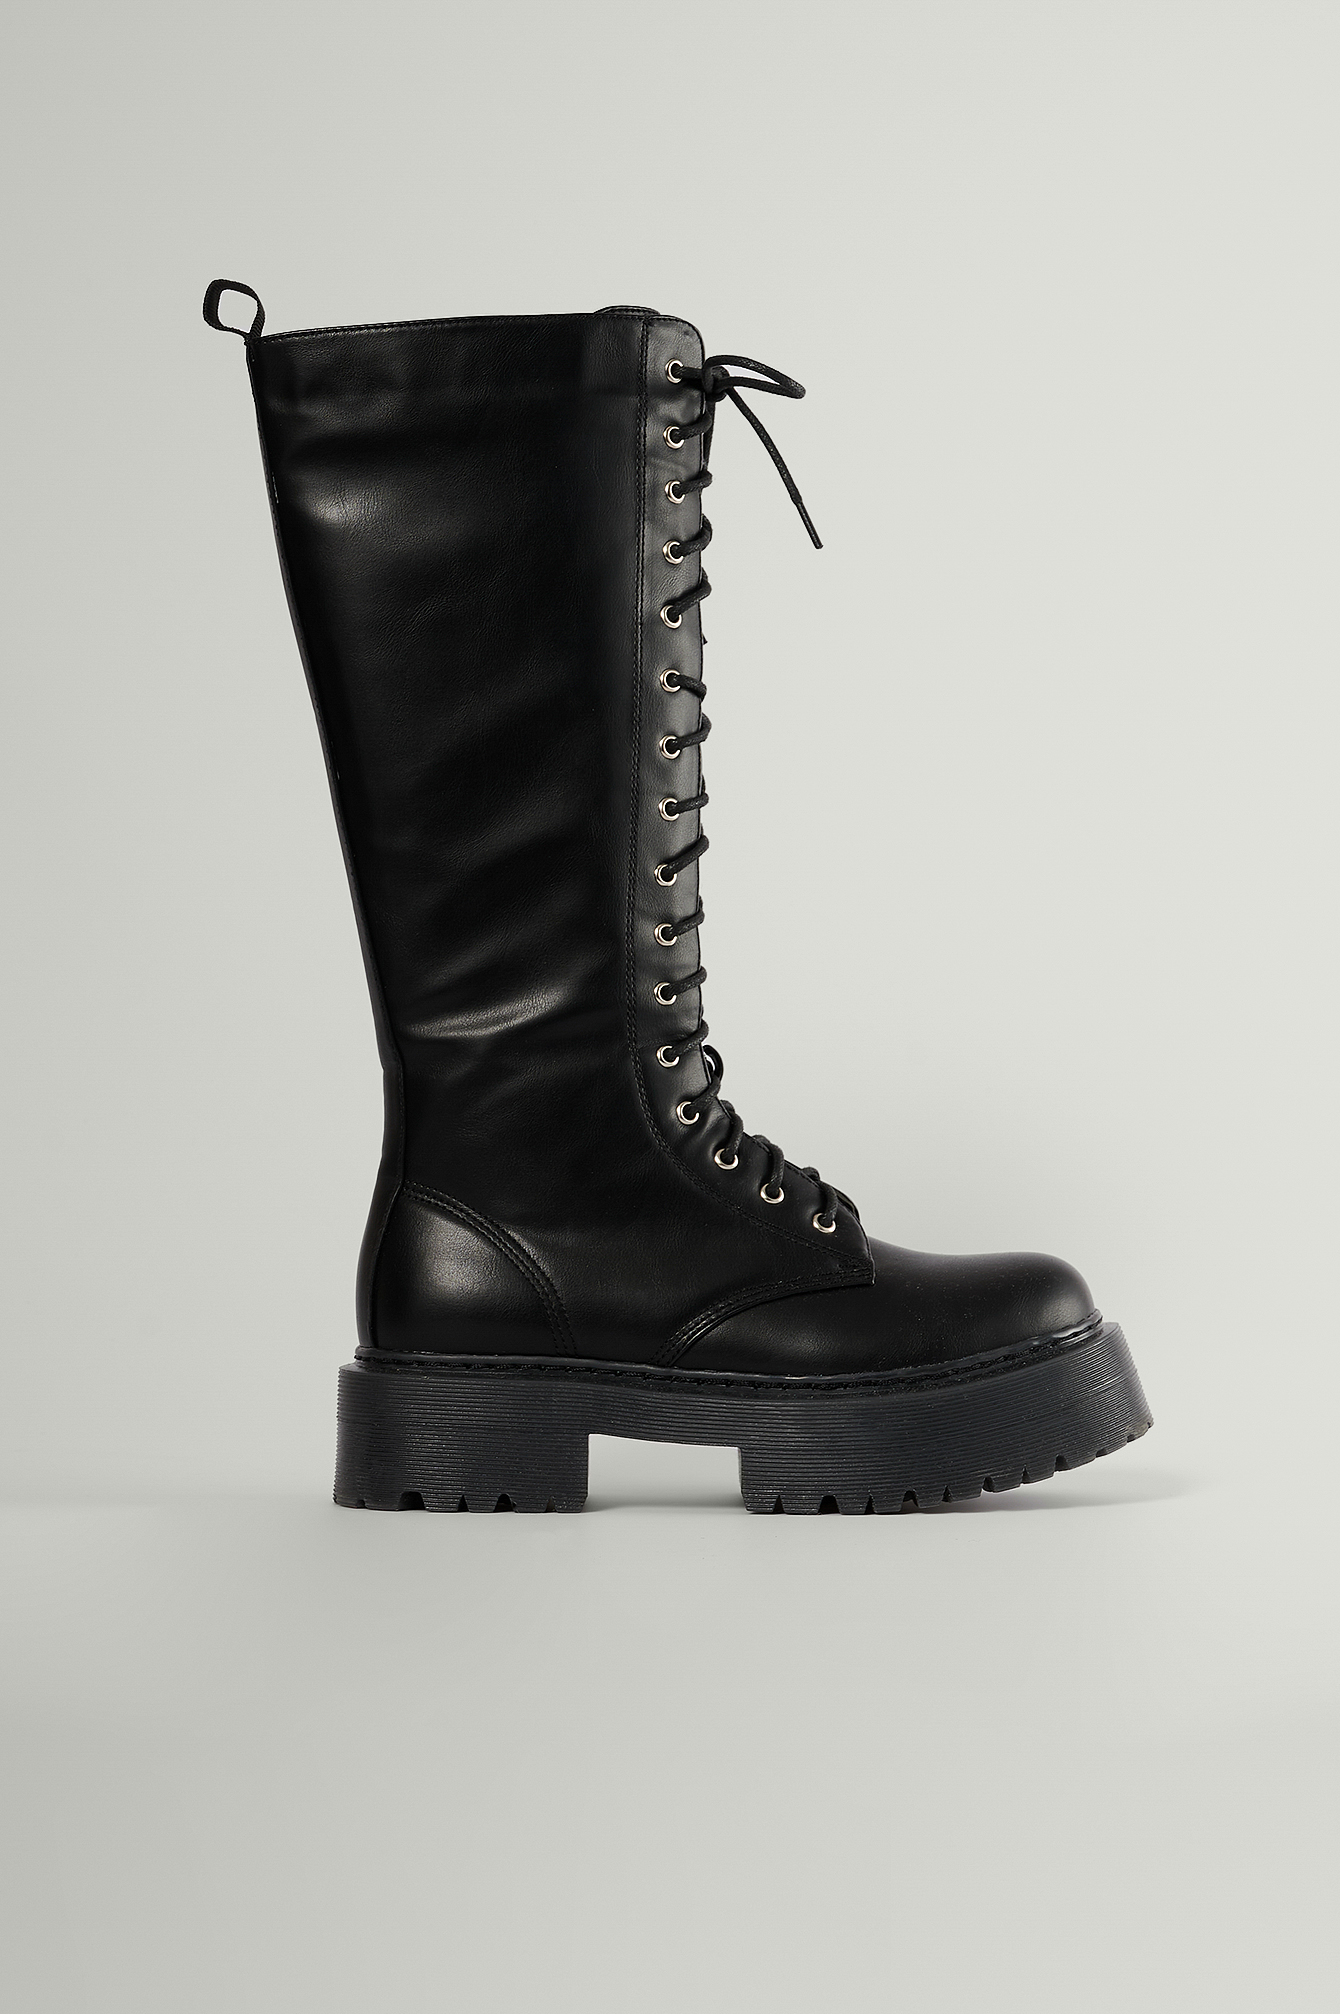 Black Profile Lace Up Shaft Boots